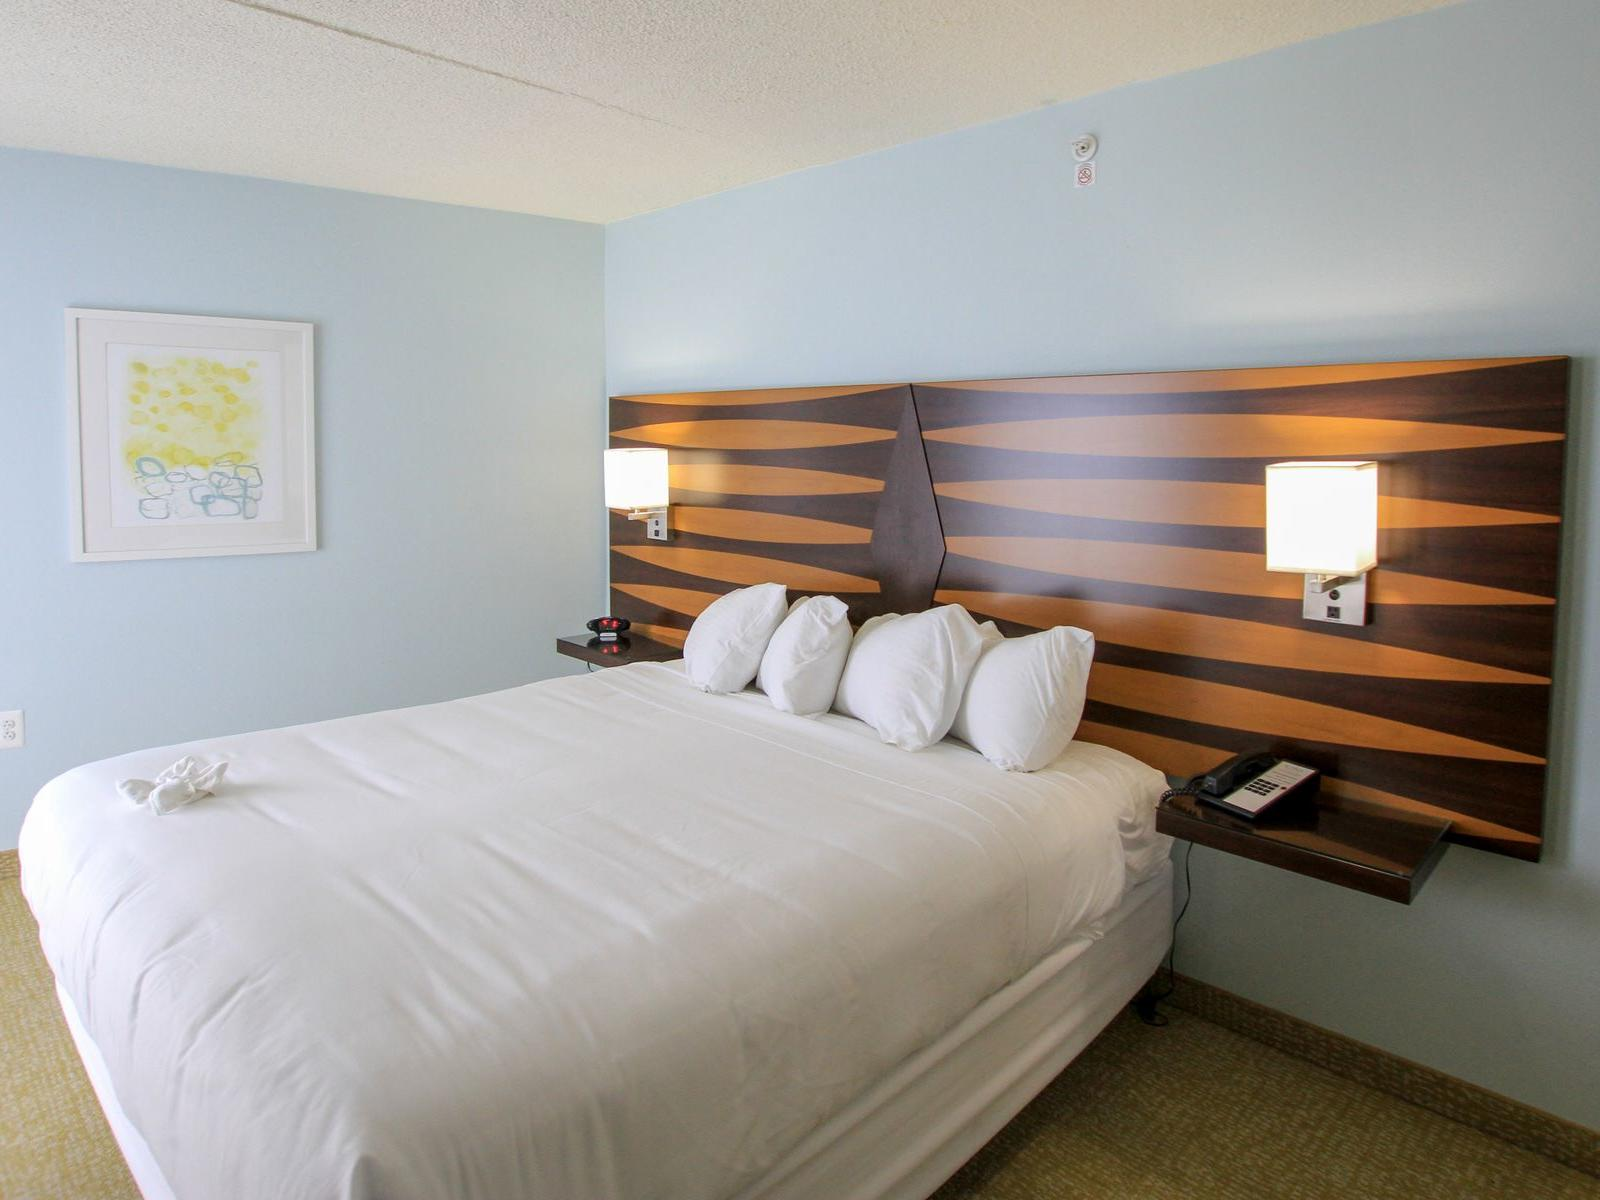 room with bed and wooden headboard